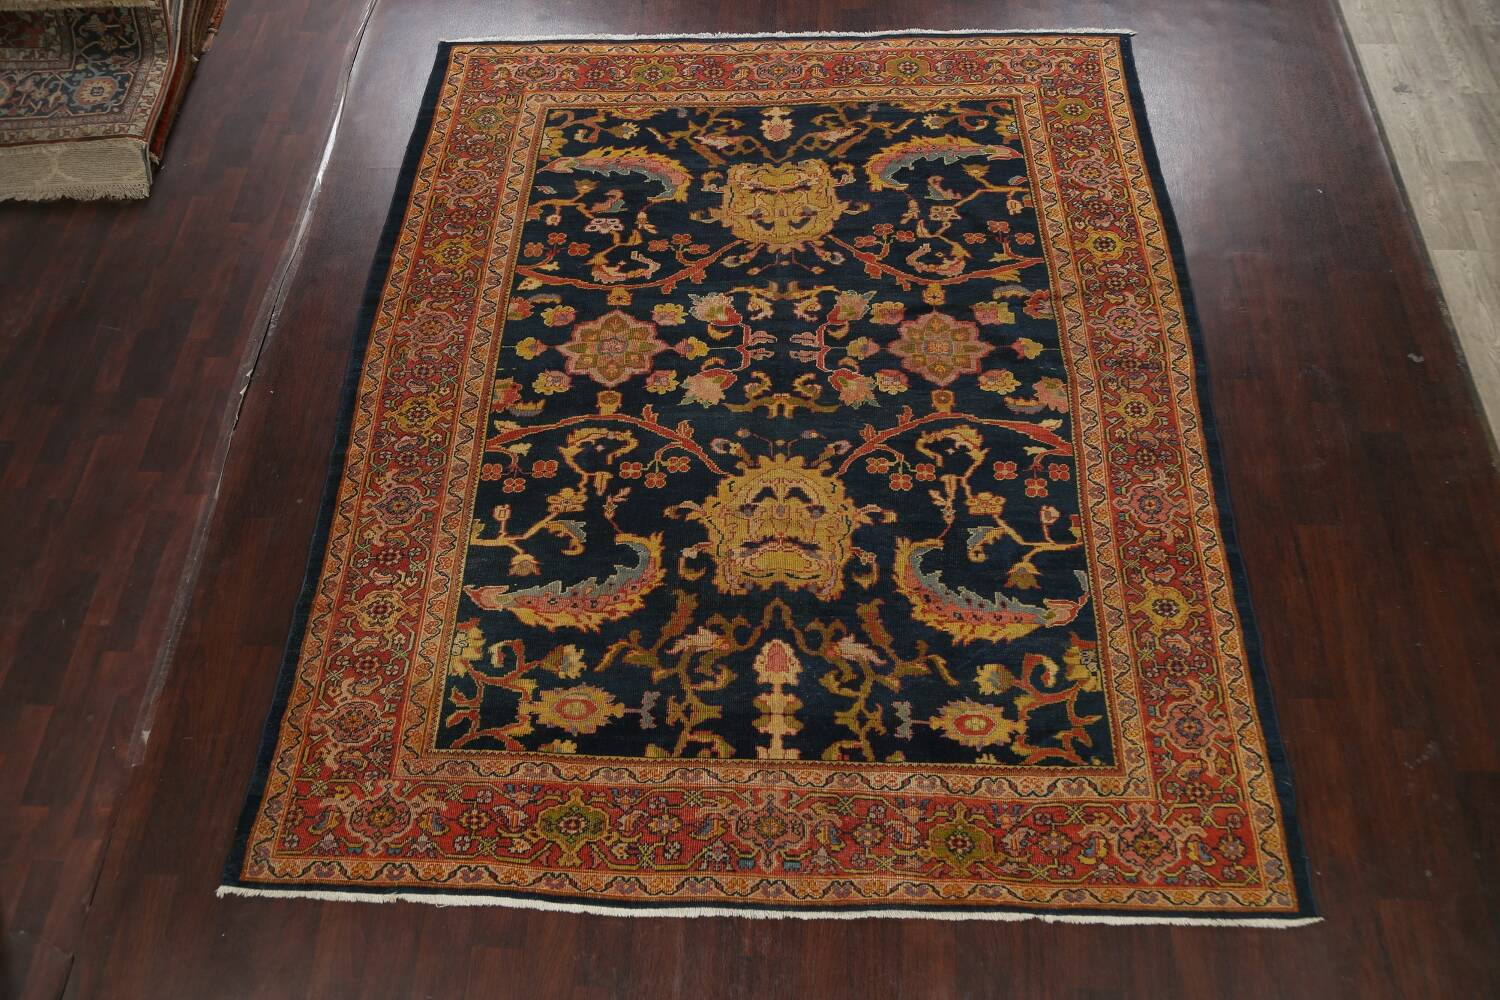 Pre-1900 Antique Vegetable Dye Sultanabad Persian Area Rug 9x10 image 2